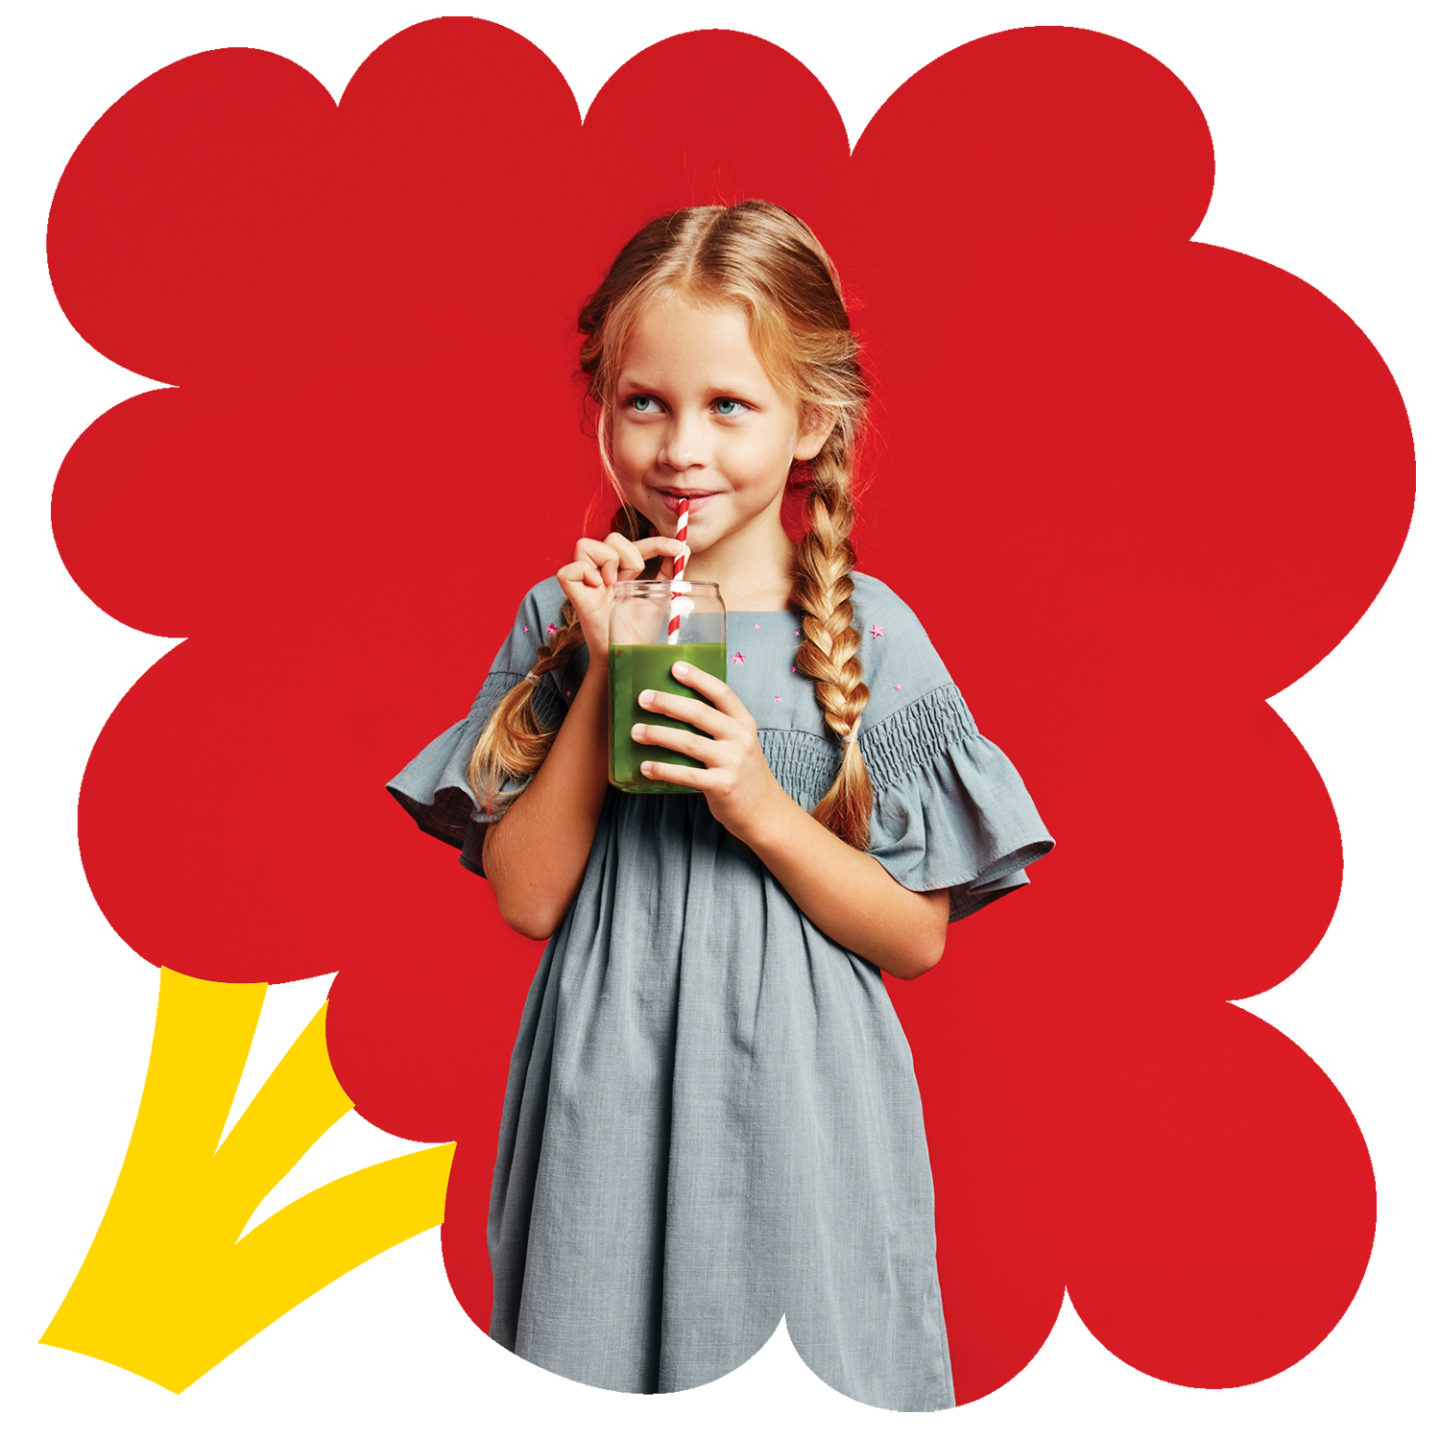 Little girl drinking a smoothie inside a stylized broccoli